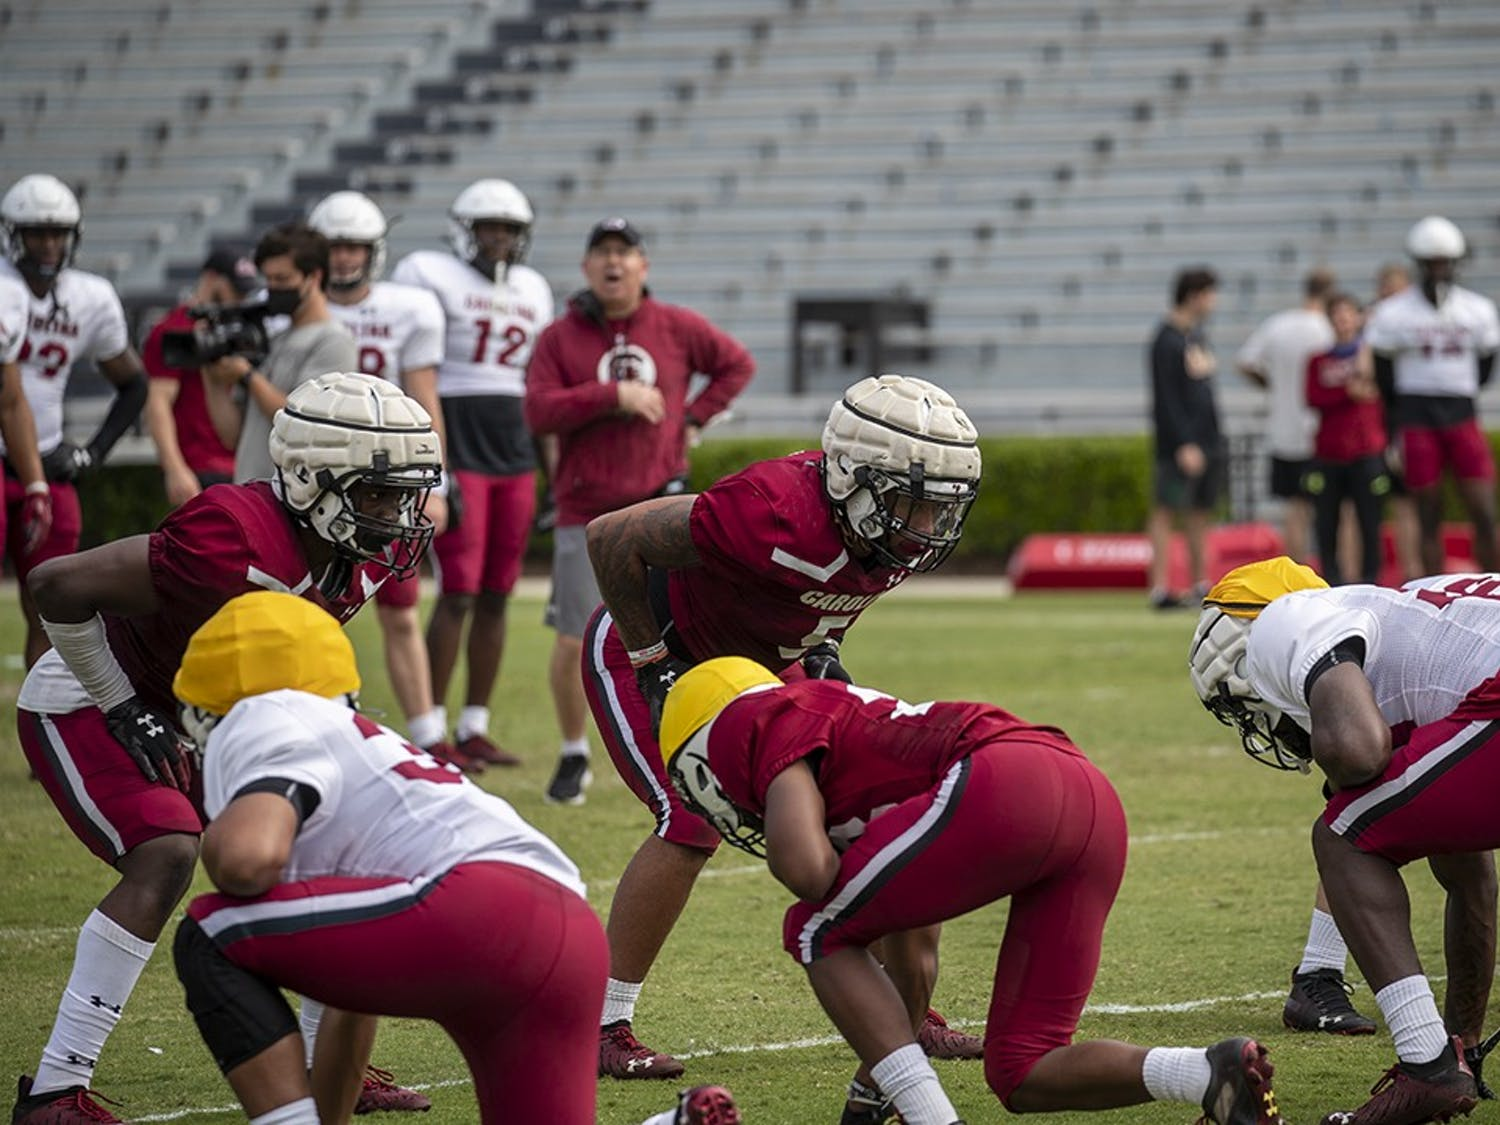 Players on the Gamecock football team practice for the upcoming spring game.